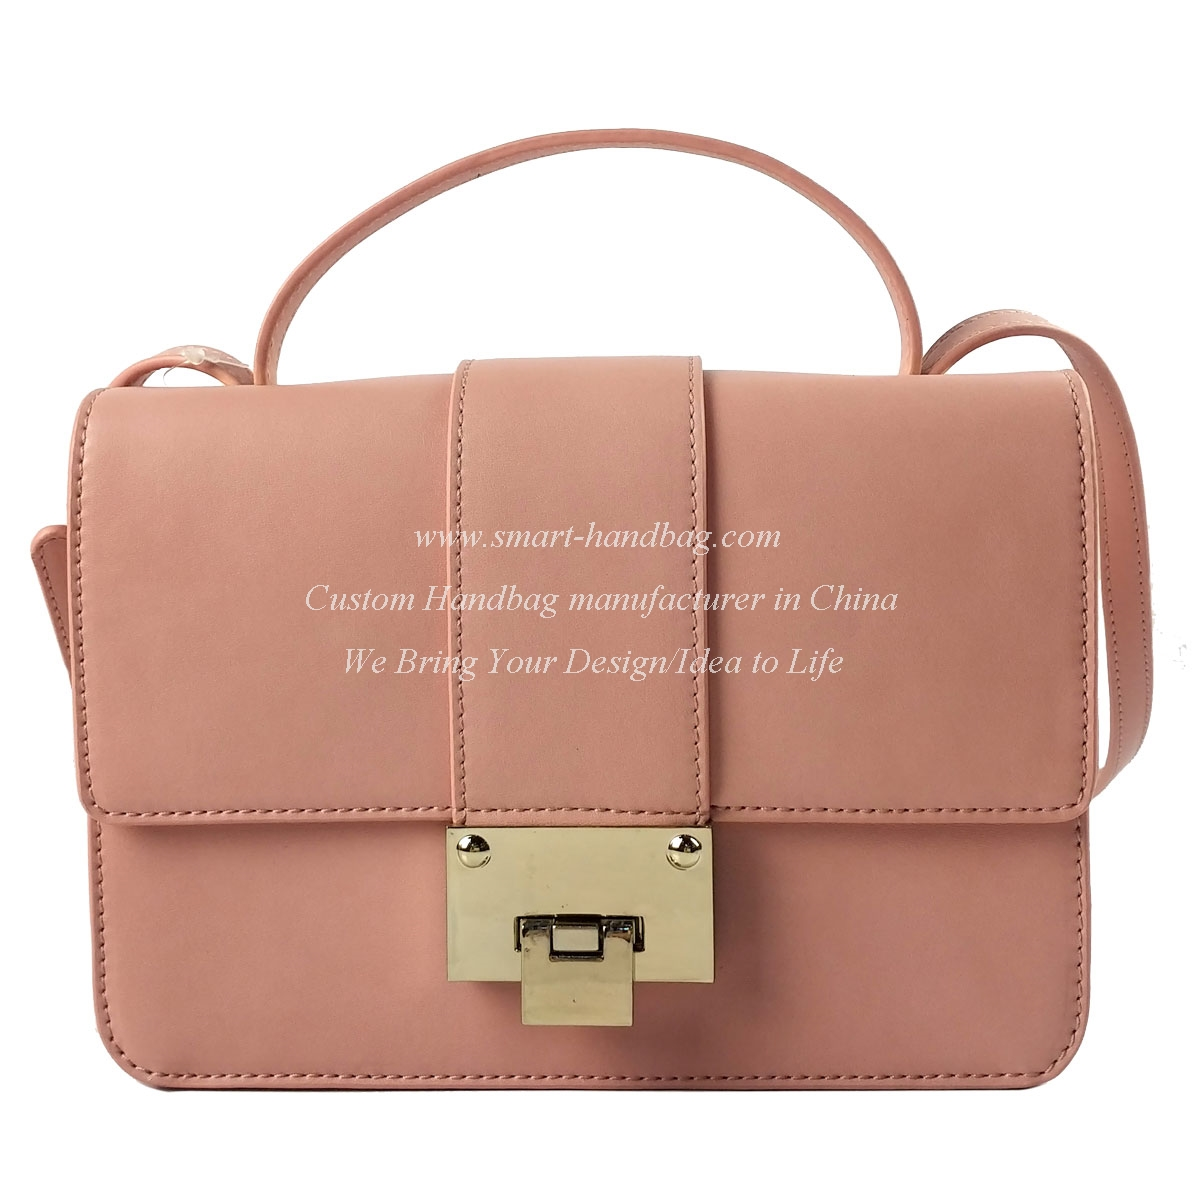 Lady Handbag with Vertical Lock Closure